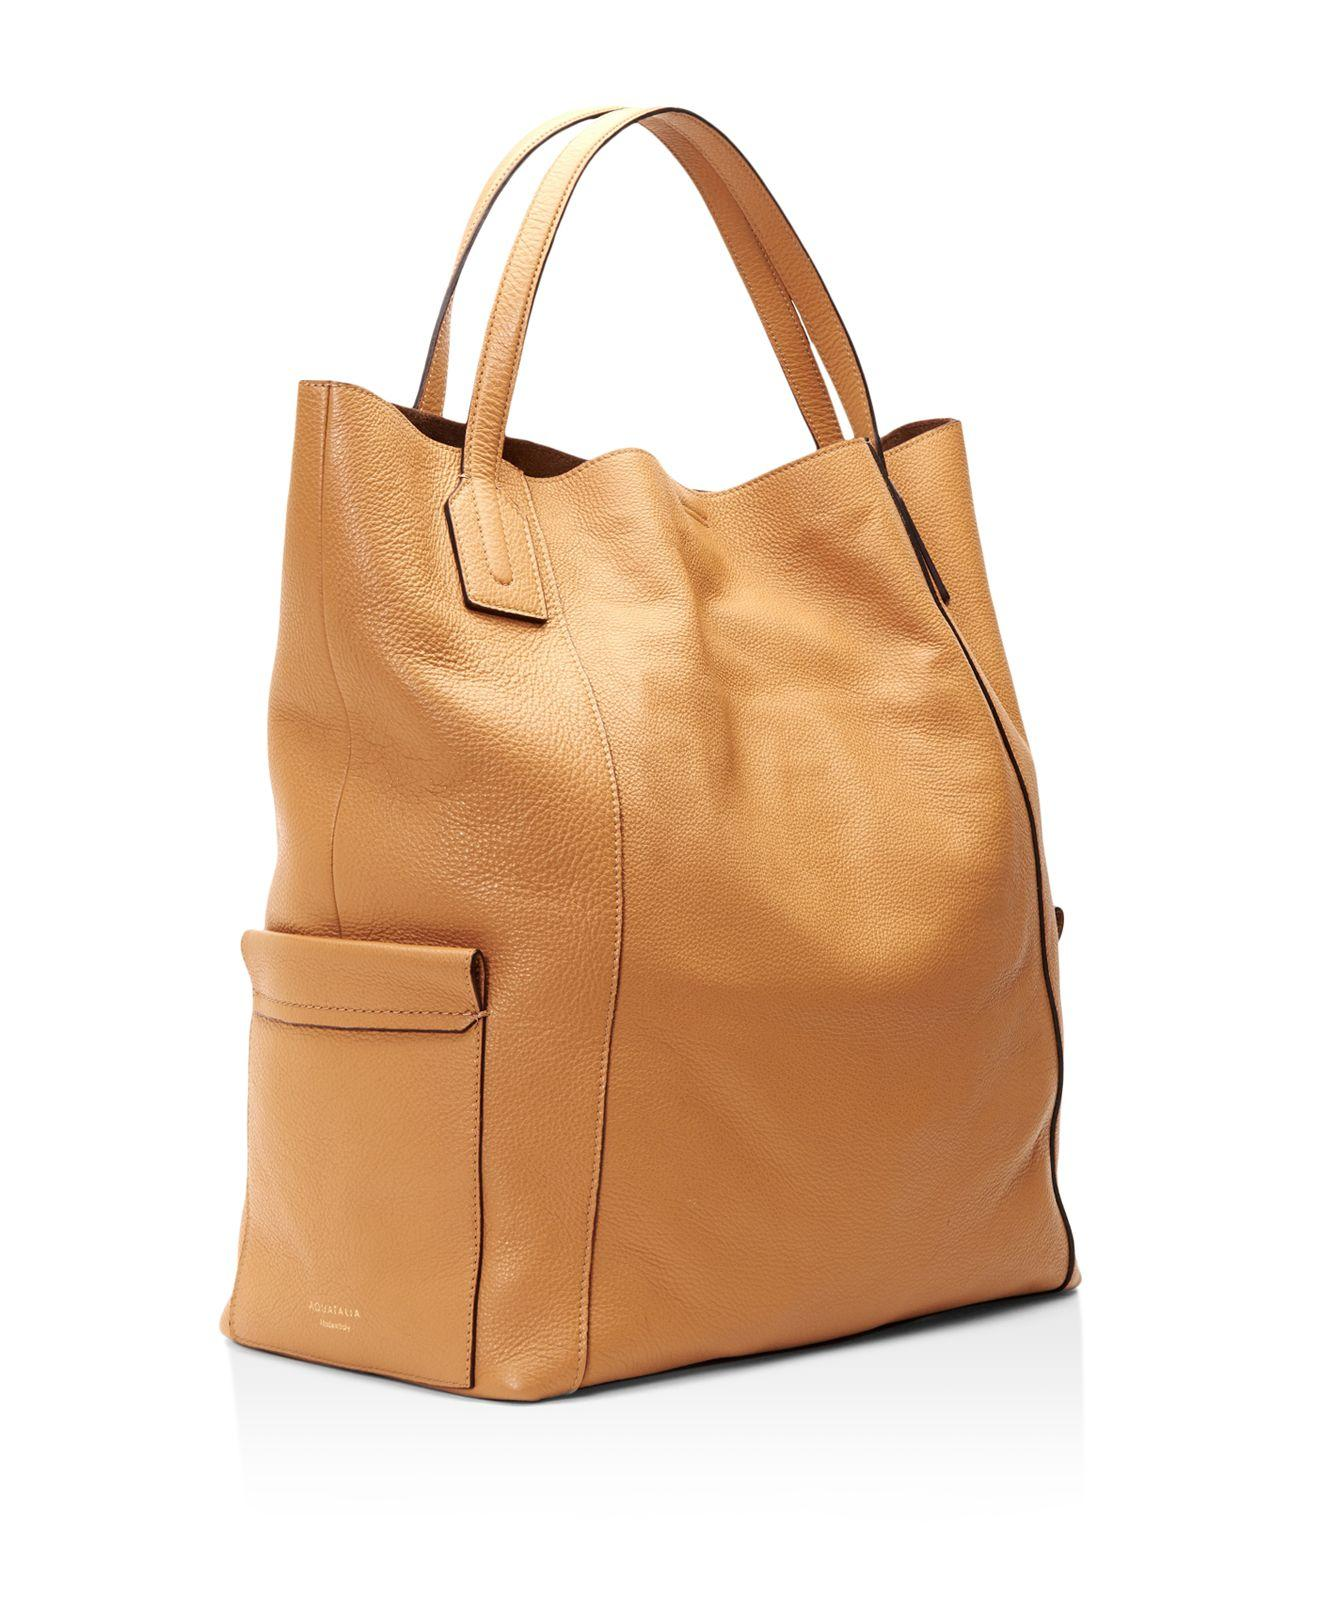 Aquatalia Leather Emery Large Tote in Brown